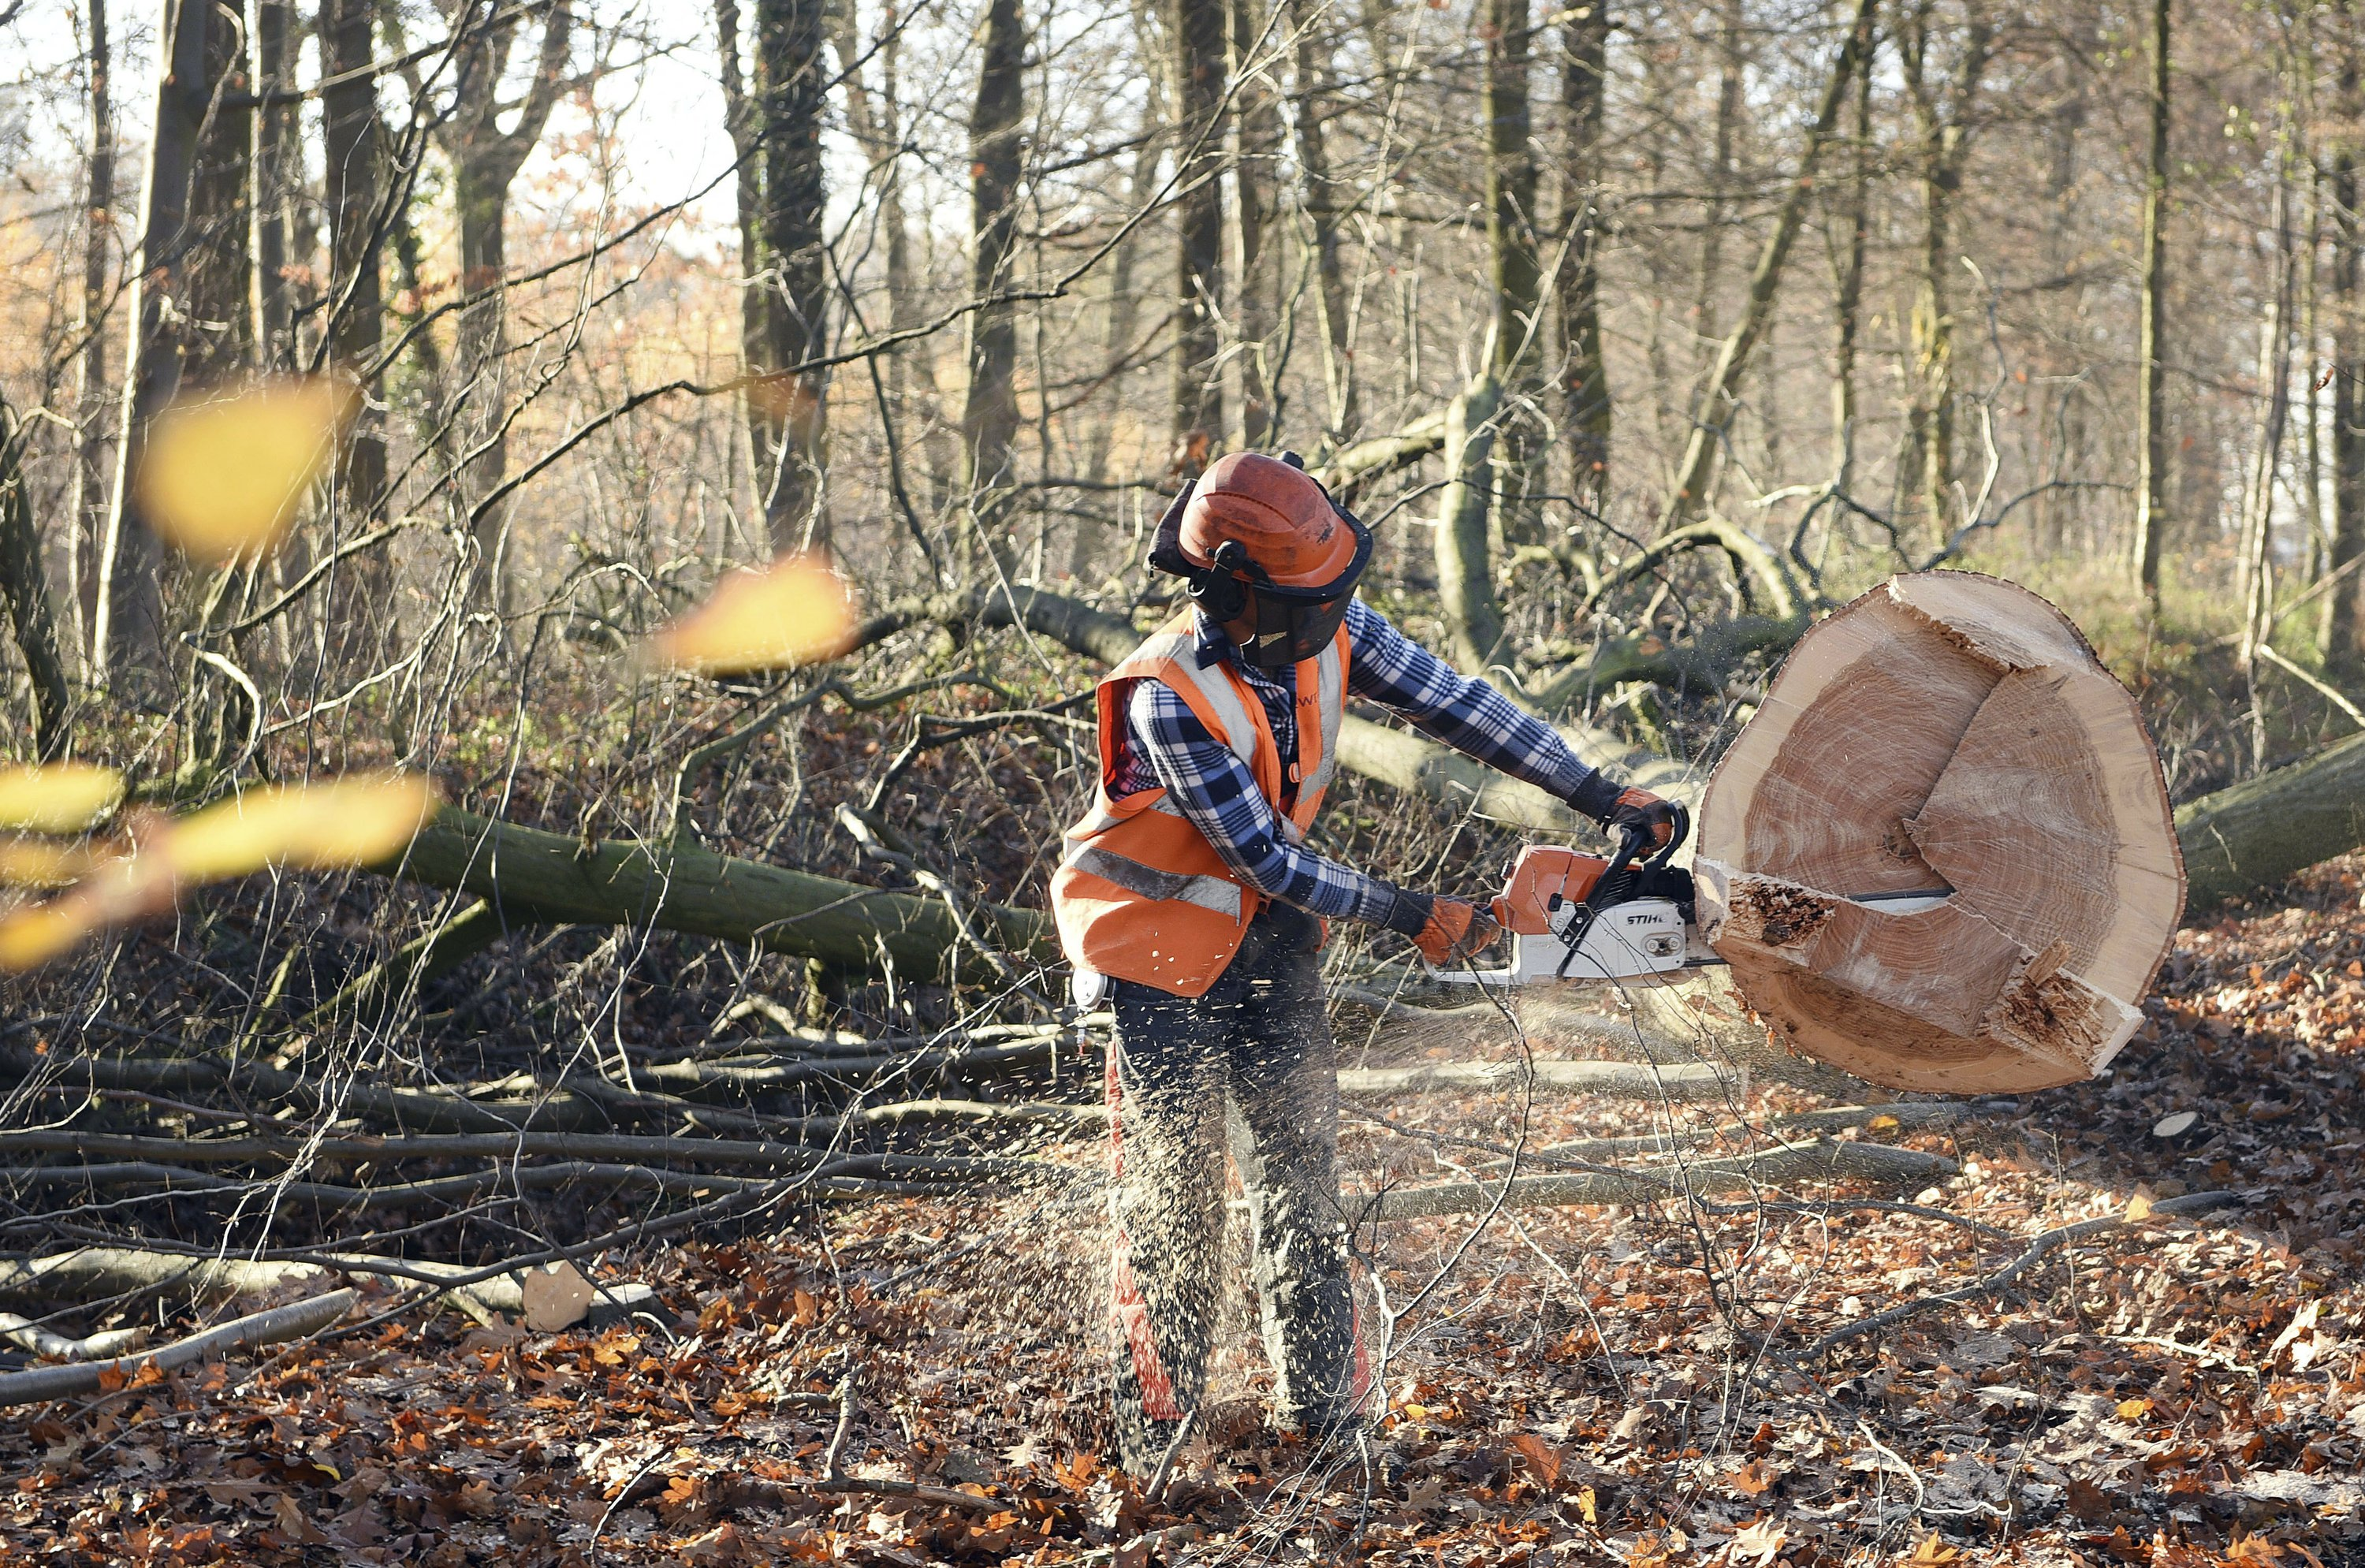 German court: Ancient forest can be cleared for coal mine